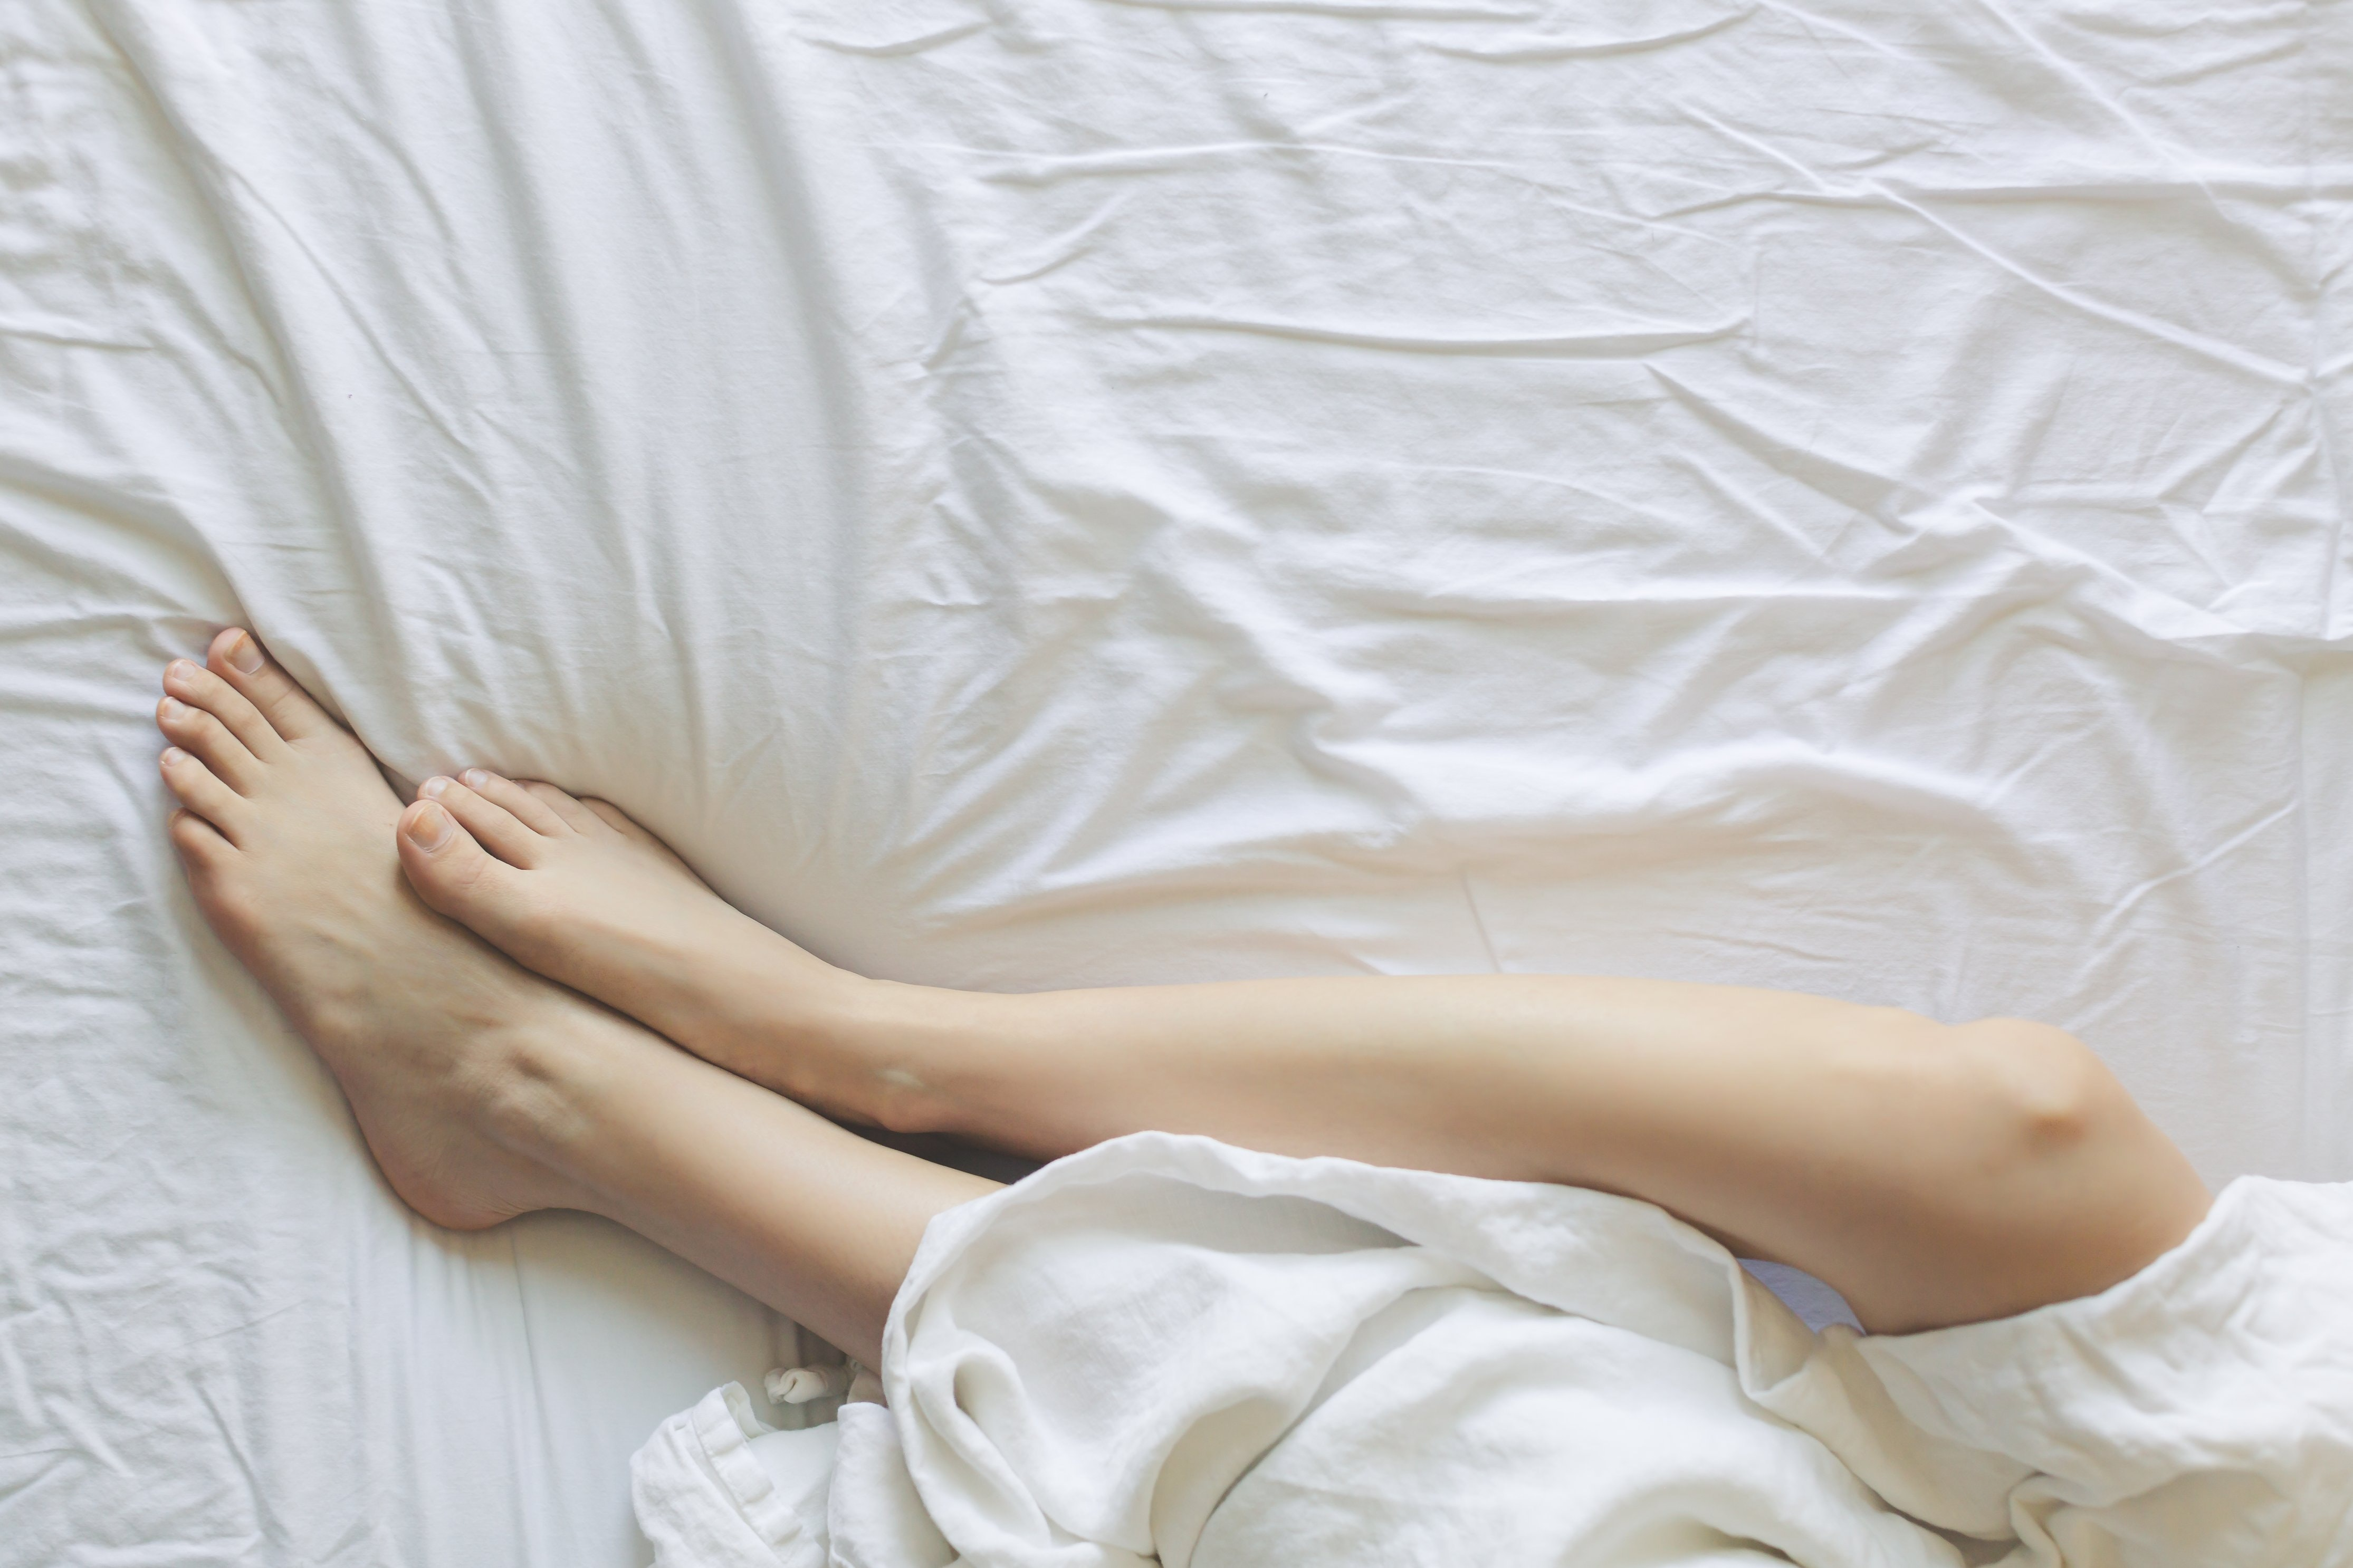 Image result for legs in bed